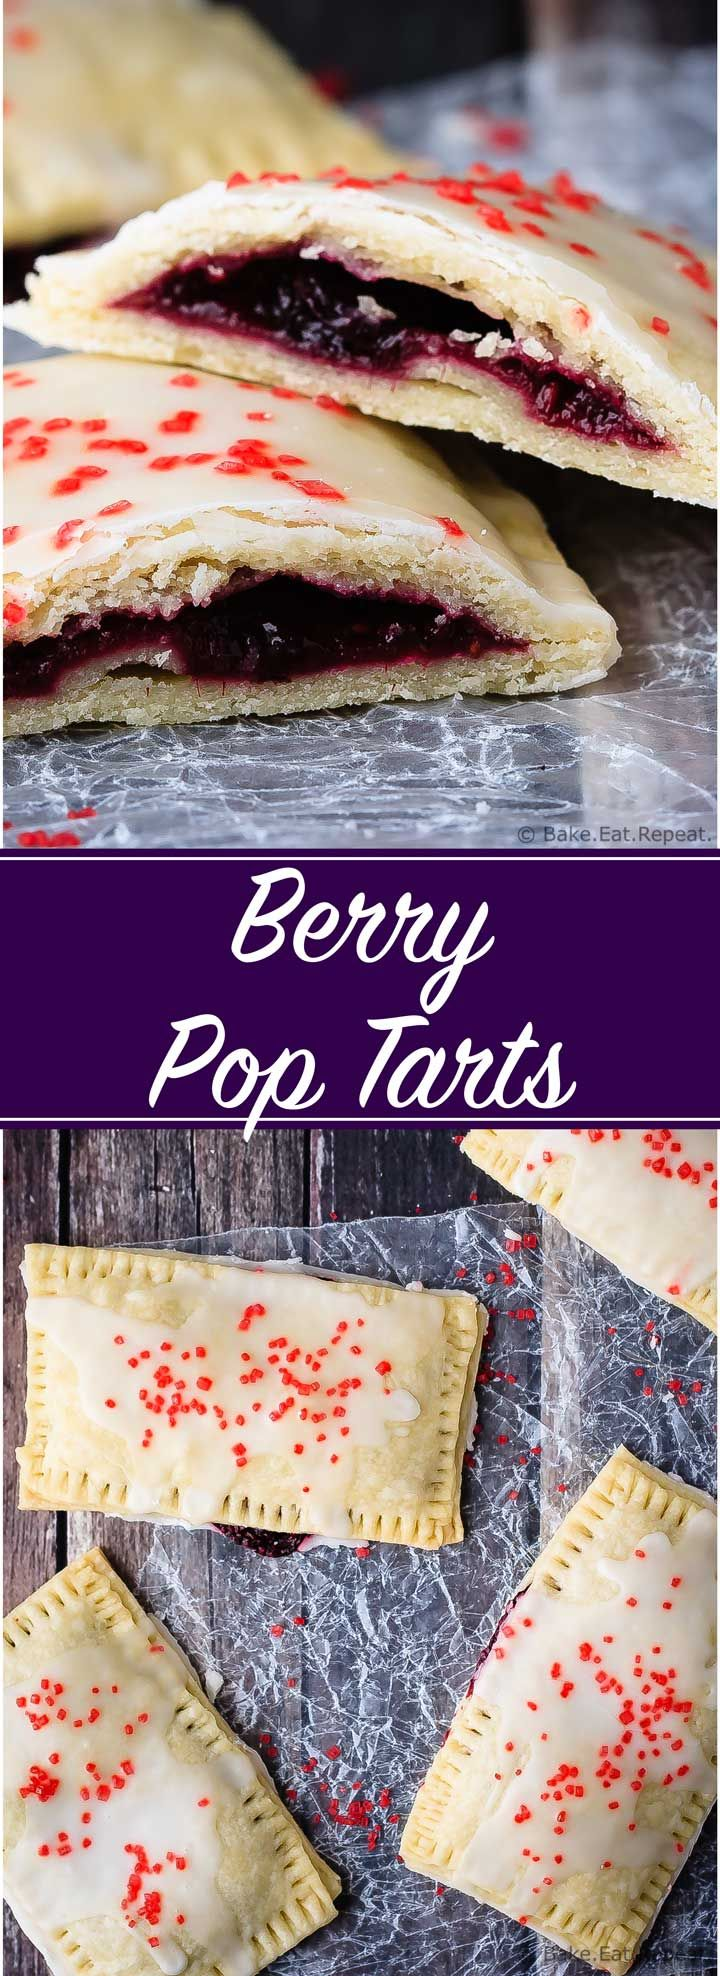 Berry Pop Tarts - Easy to make homemade berry pop tarts that are better then the real thing. Flaky pastry, homemade berry filling and a sweet frosting - pie for breakfast?